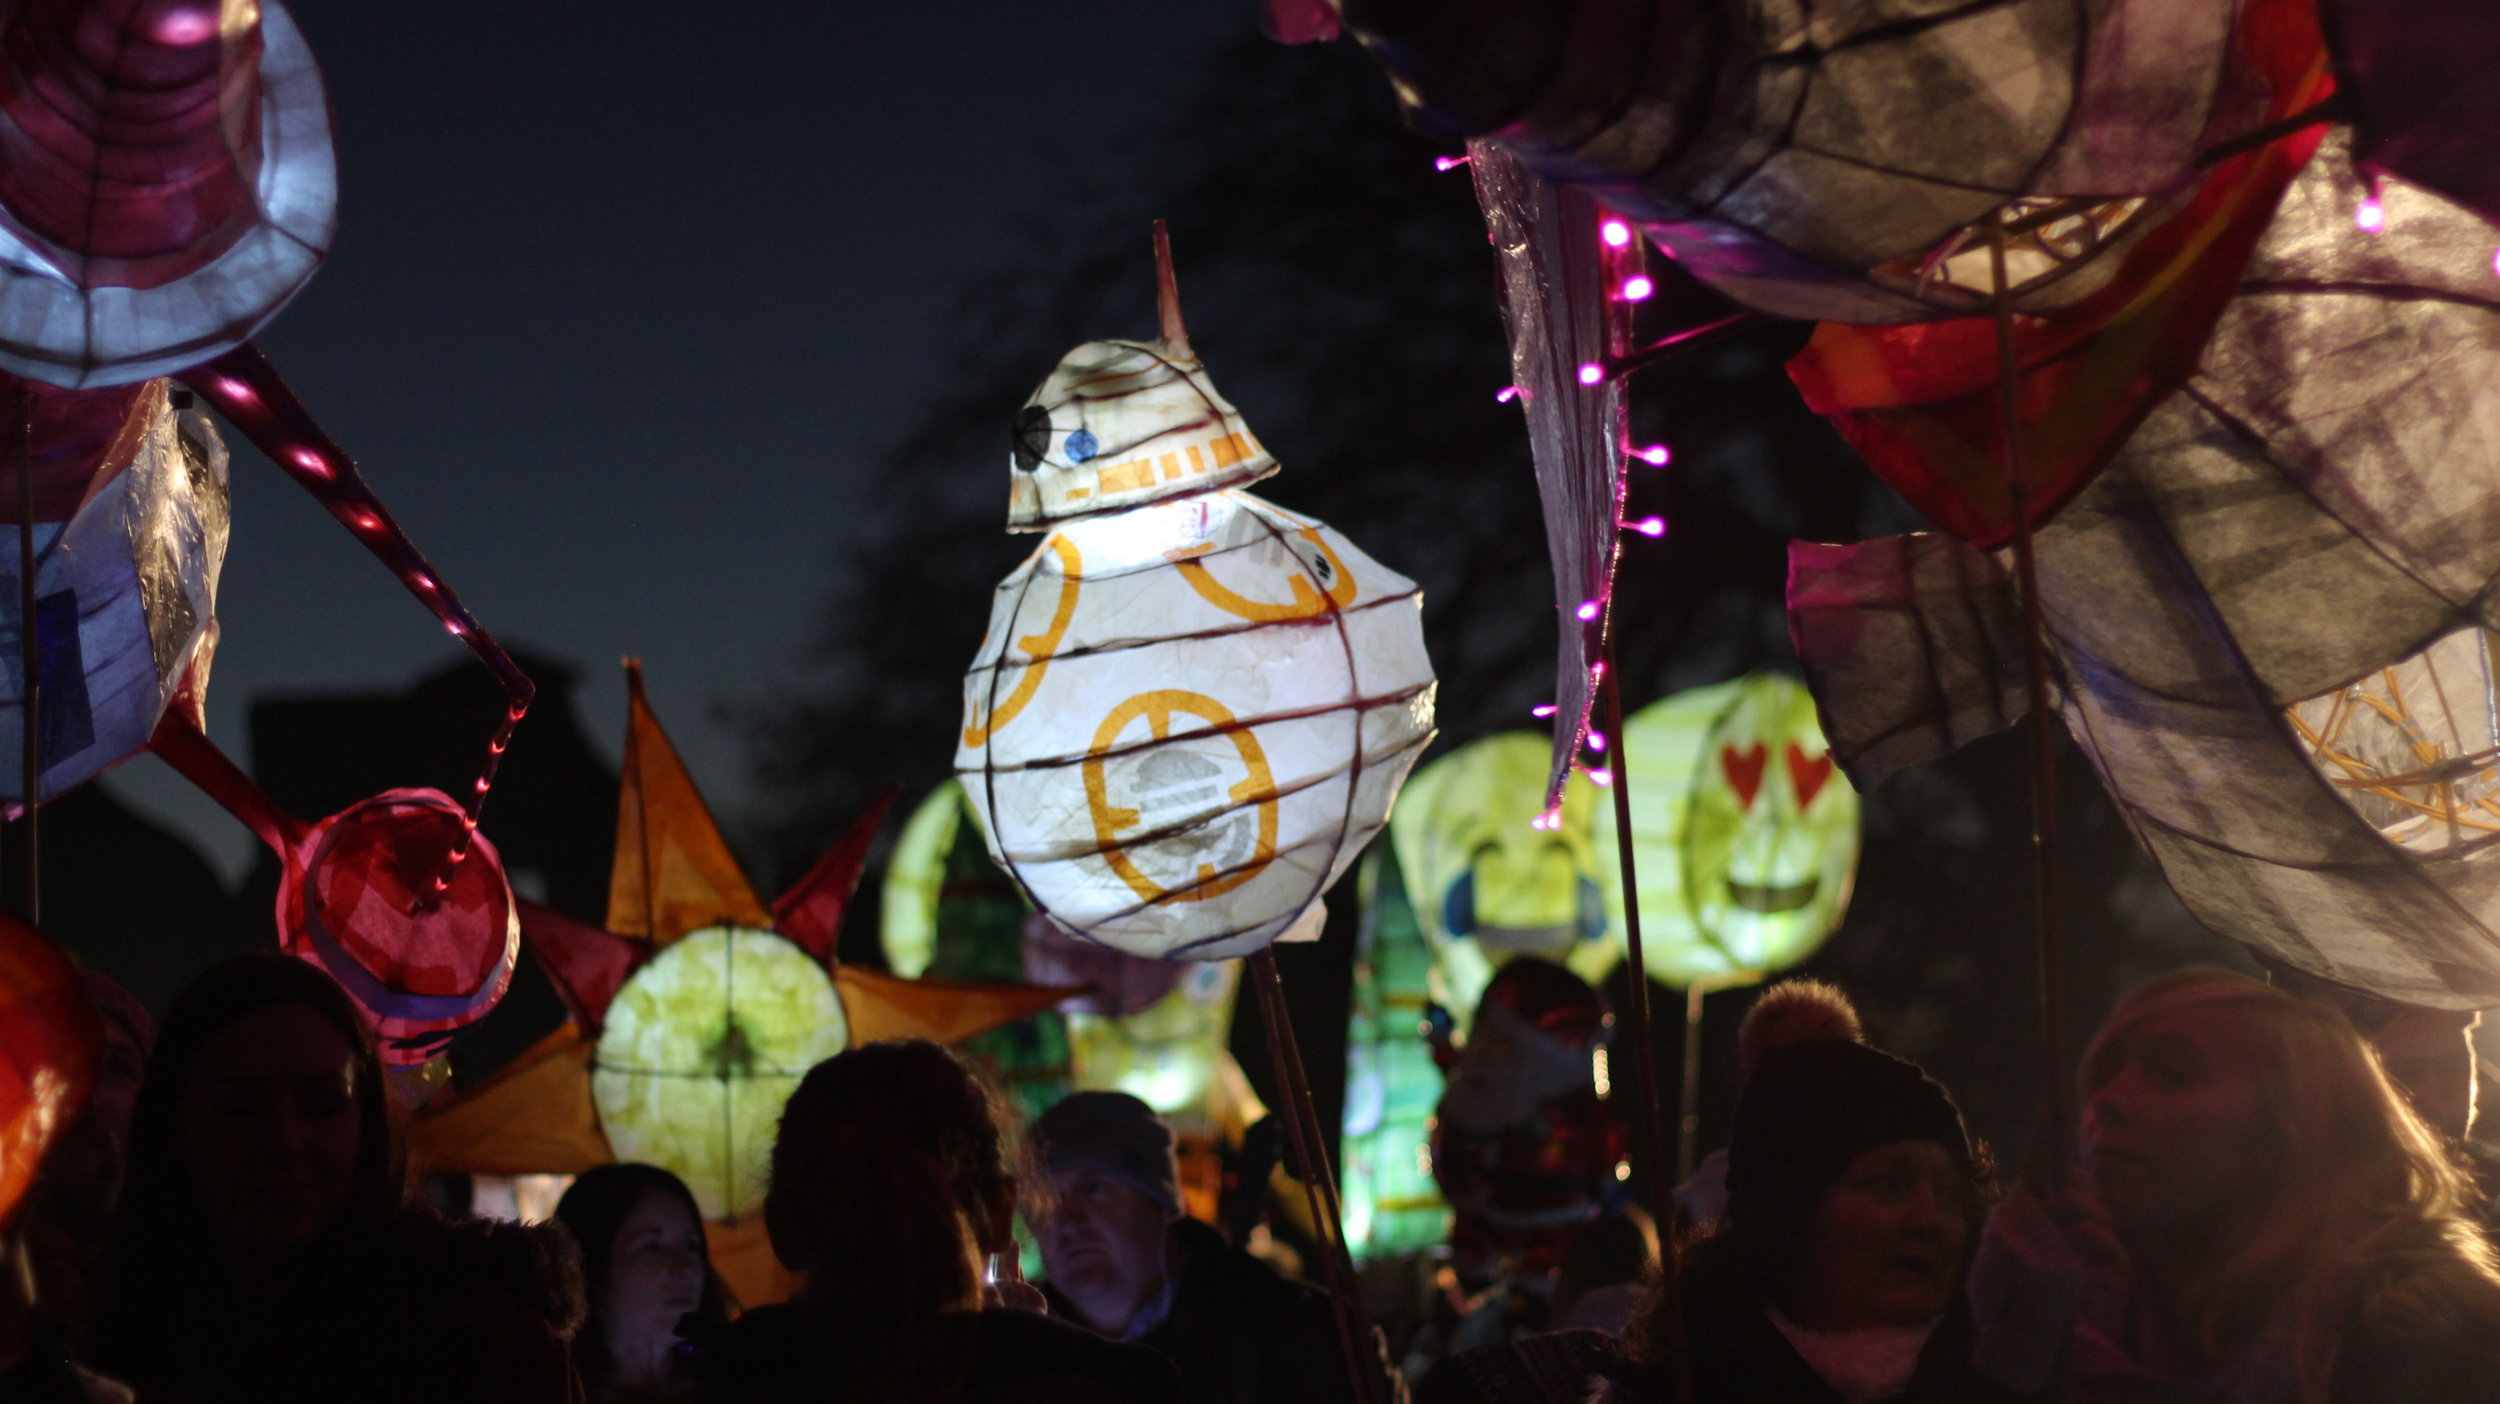 Filming at the Bolsover Lantern Parade in November 2016